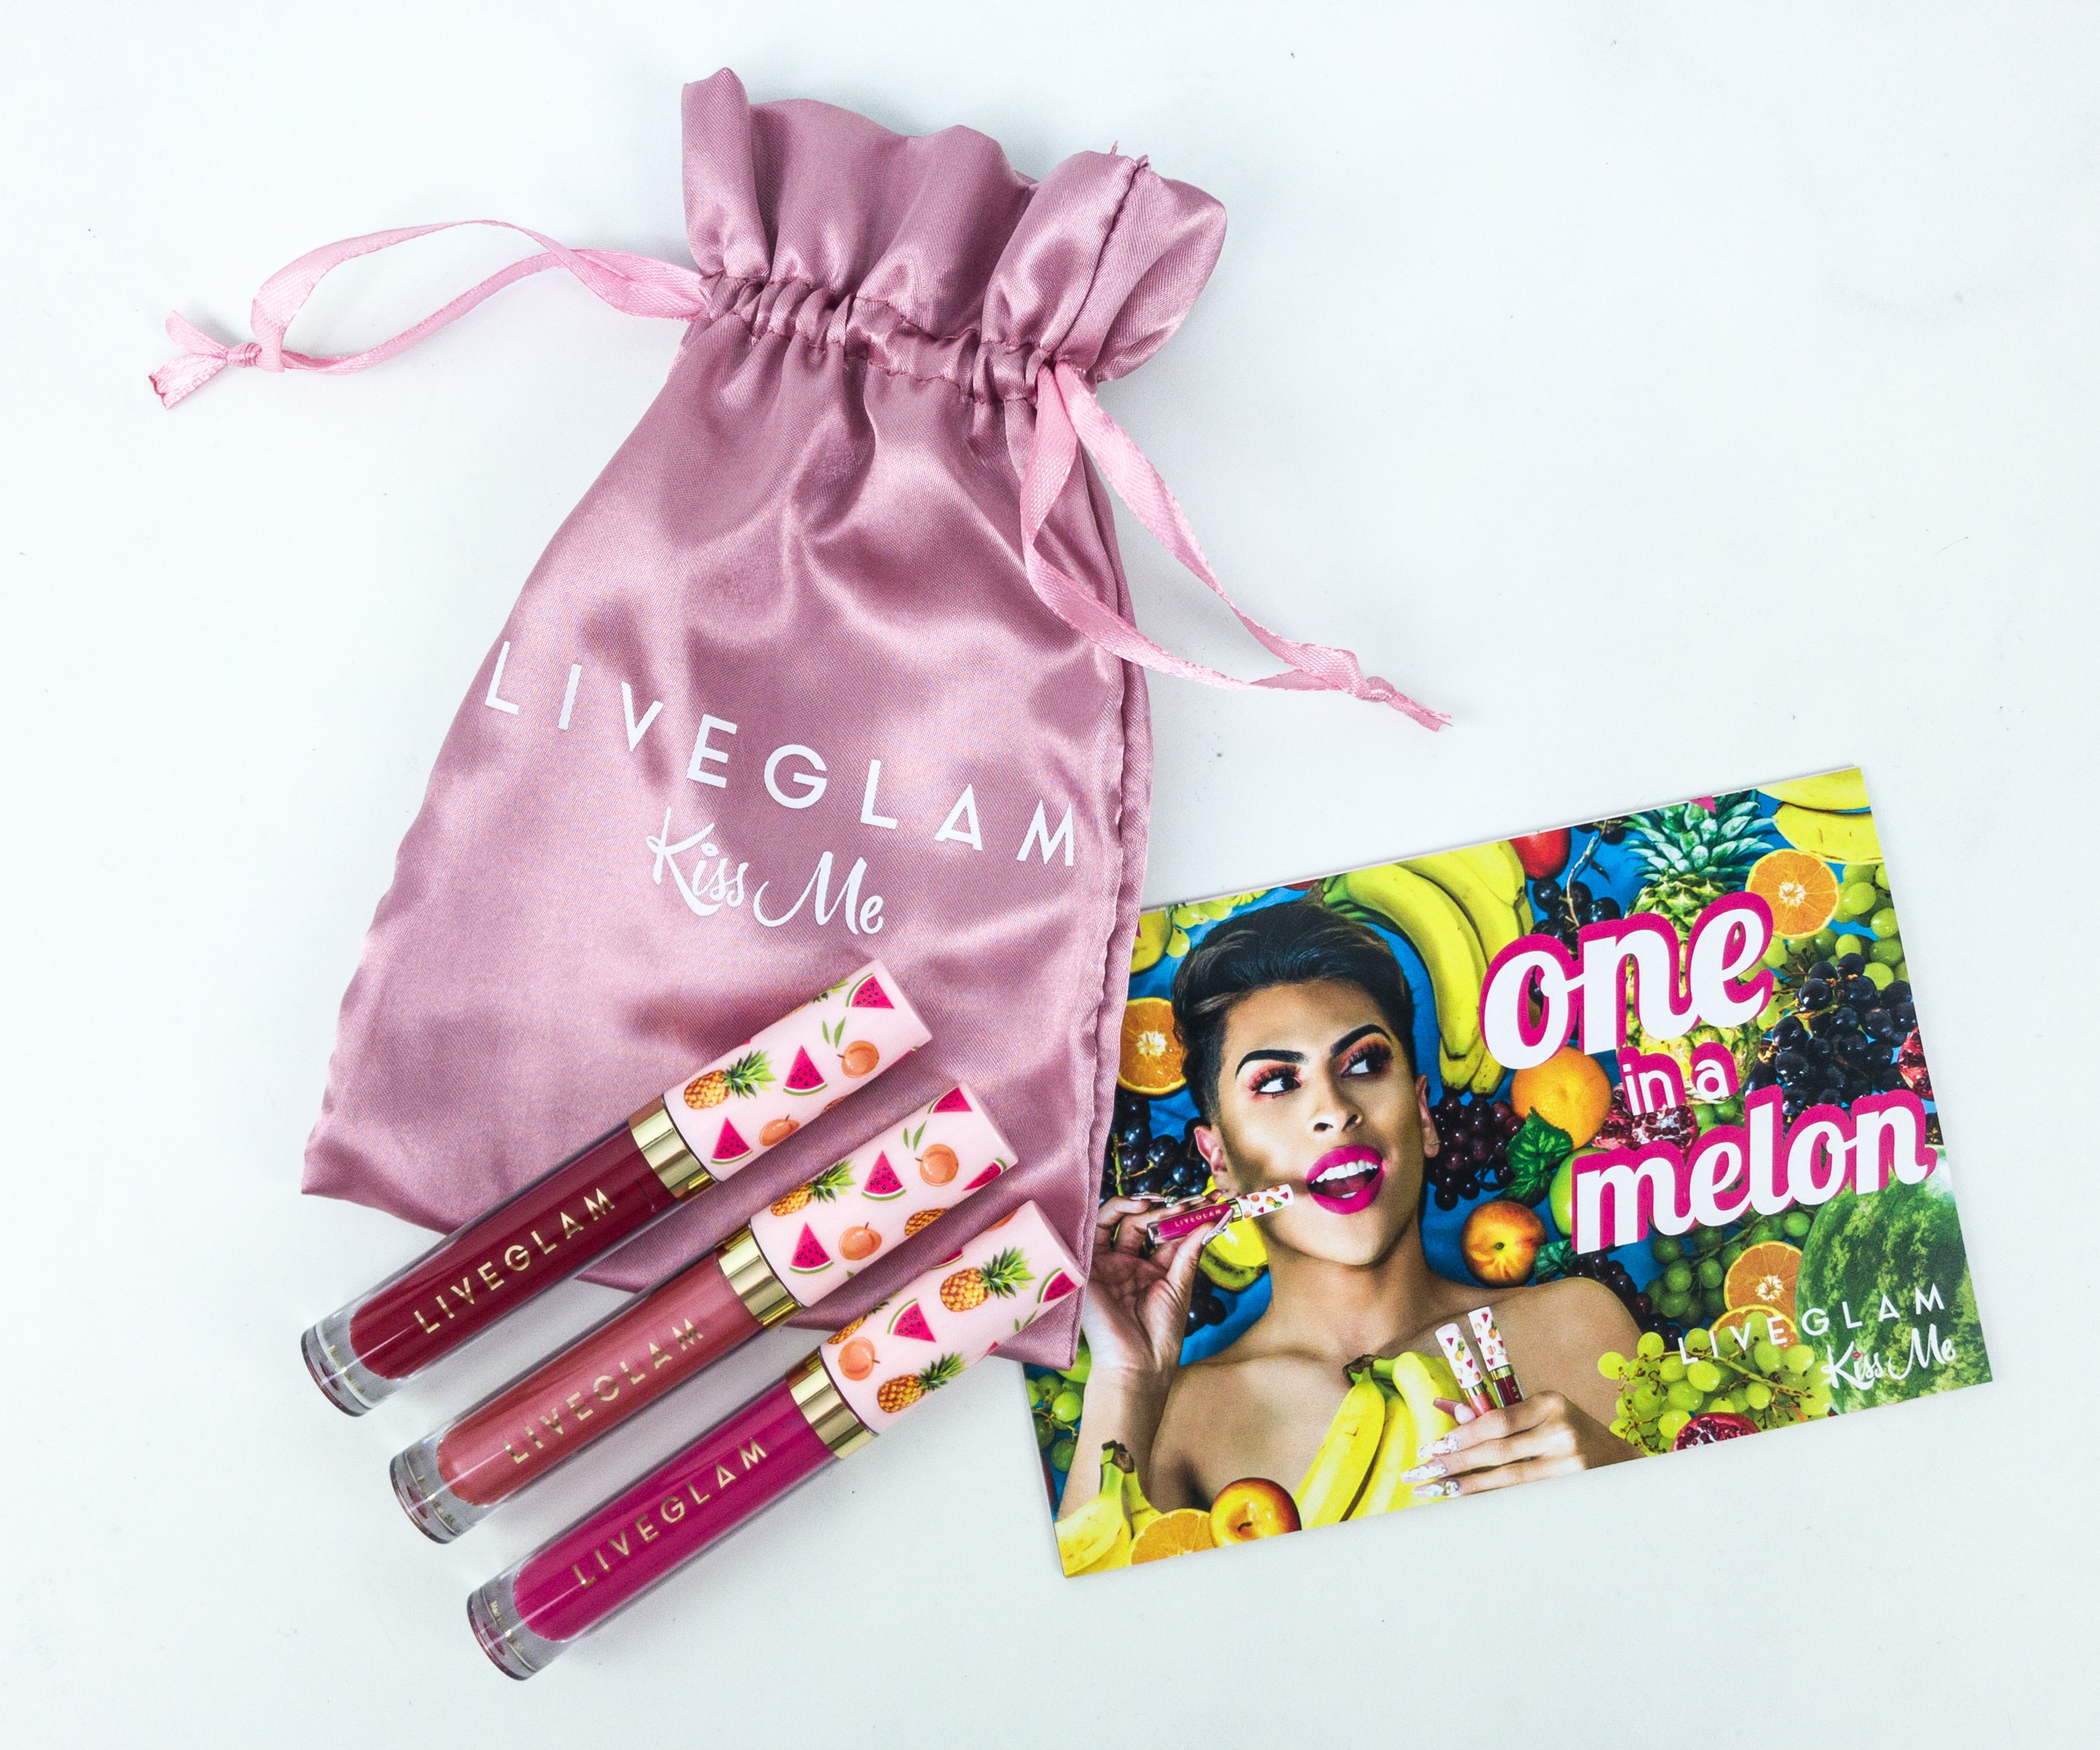 KissMe Lipstick Club July 2019 Subscription Box Review + FREE Lipstick Coupon!